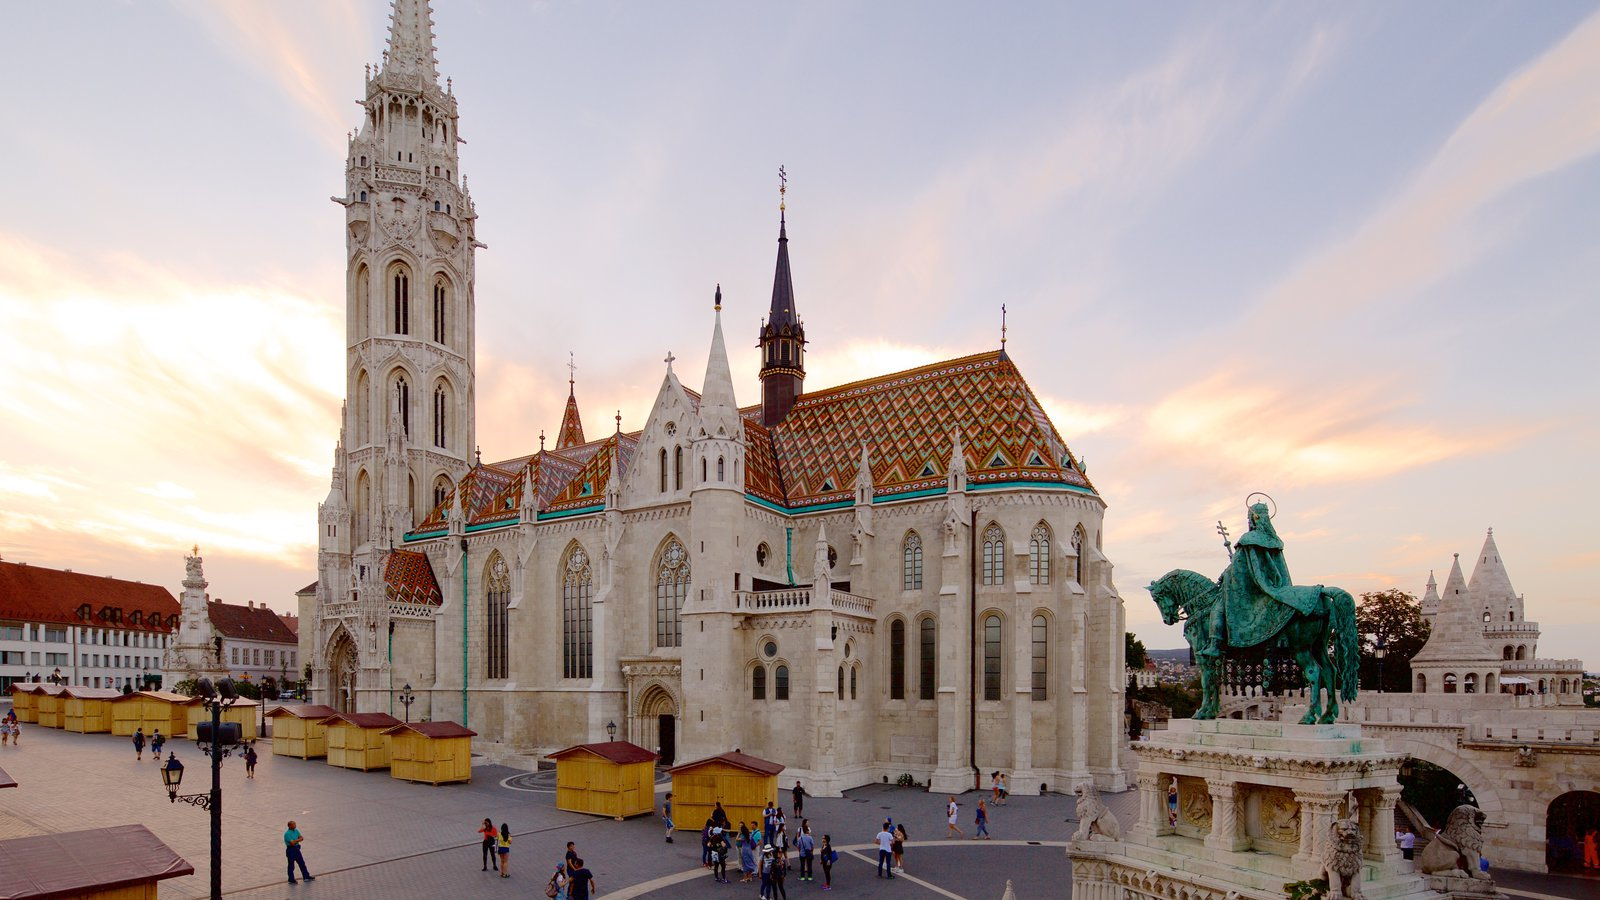 Matthias Church showing a statue or sculpture, a monument and heritage architecture